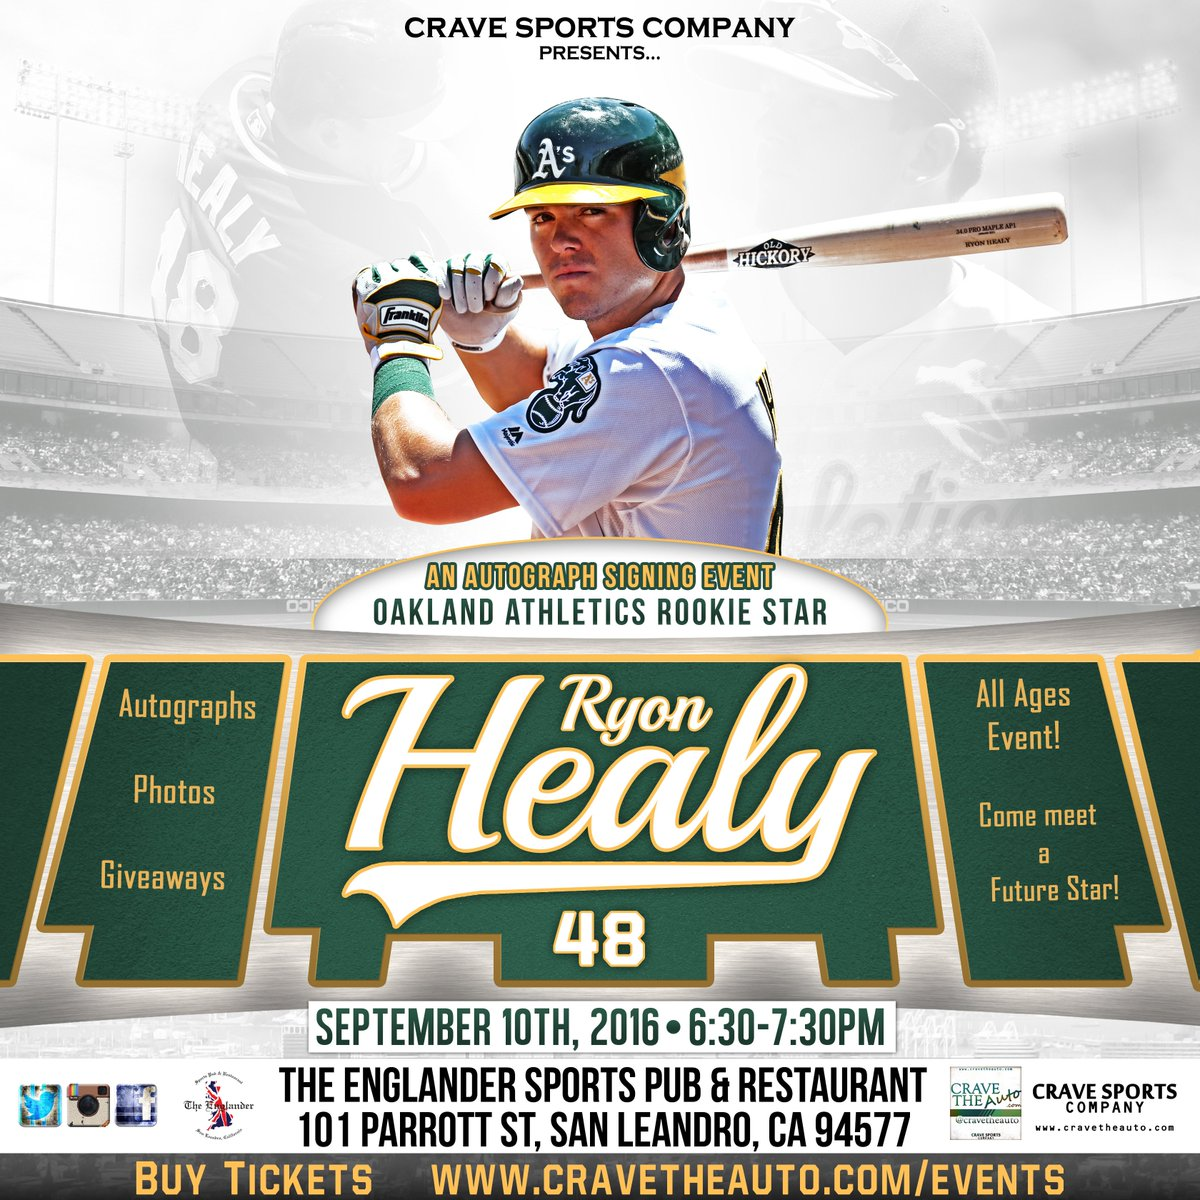 f2842a635c2 Tickets items on sale for the RYON HEALY signing SEPT10-Don t miss out!  http   www.cravetheauto.com ryon-healy   Athleticspic.twitter.com UP1LquC9eh